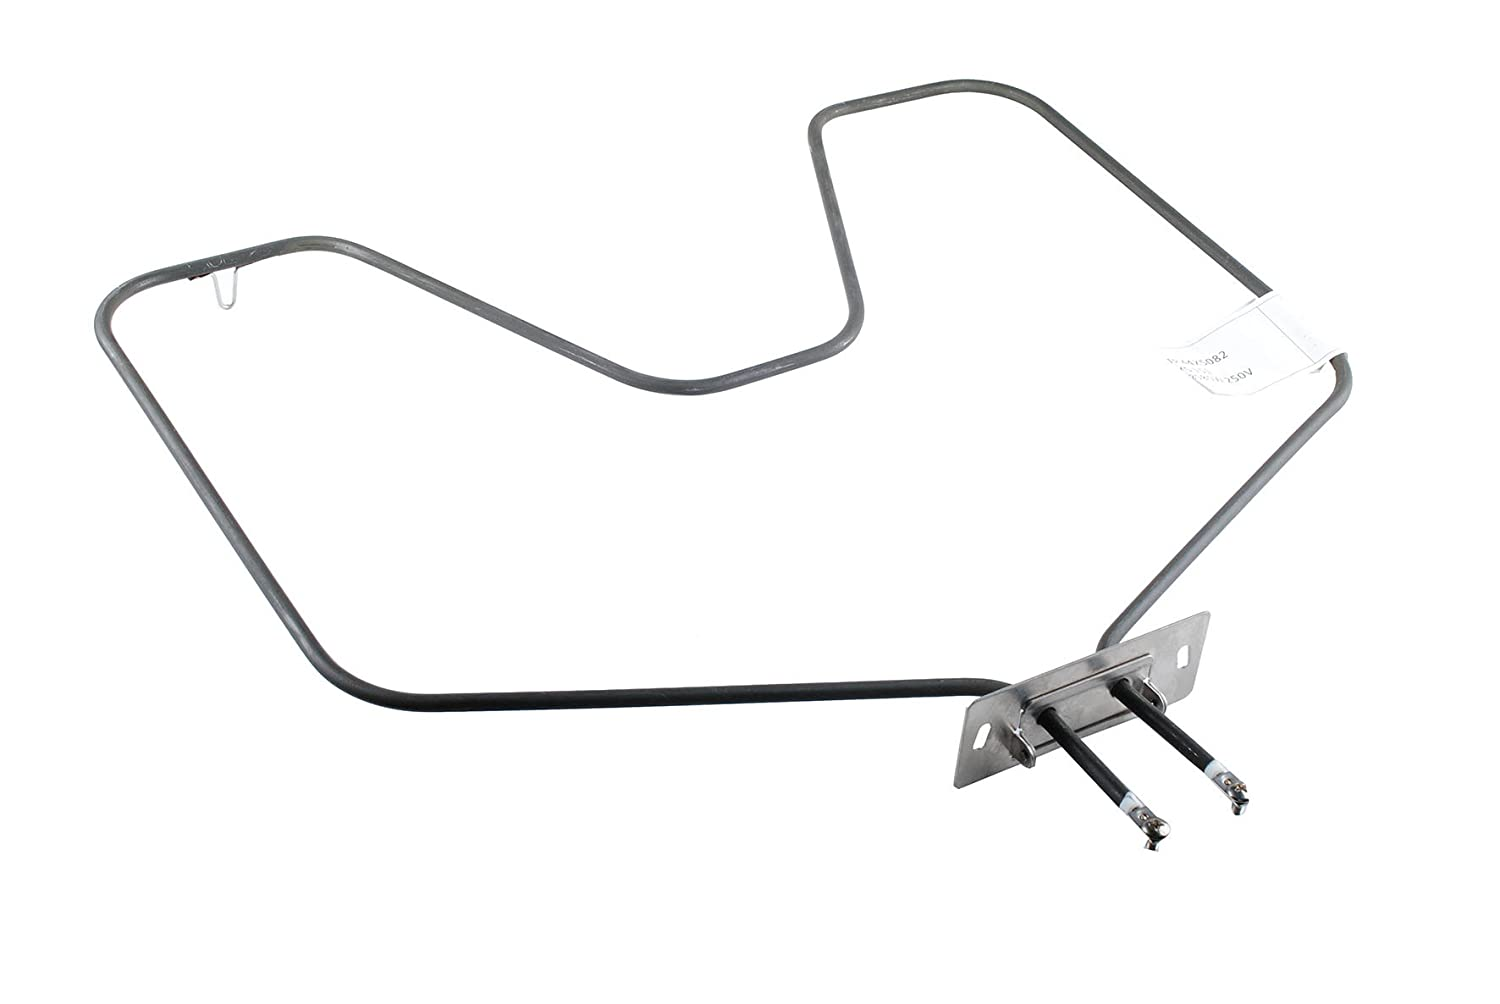 WB44X5082 Baking Element Replacement Compatible with GE Hotpoint RCA Sears Oven Heating Element WB44X5082